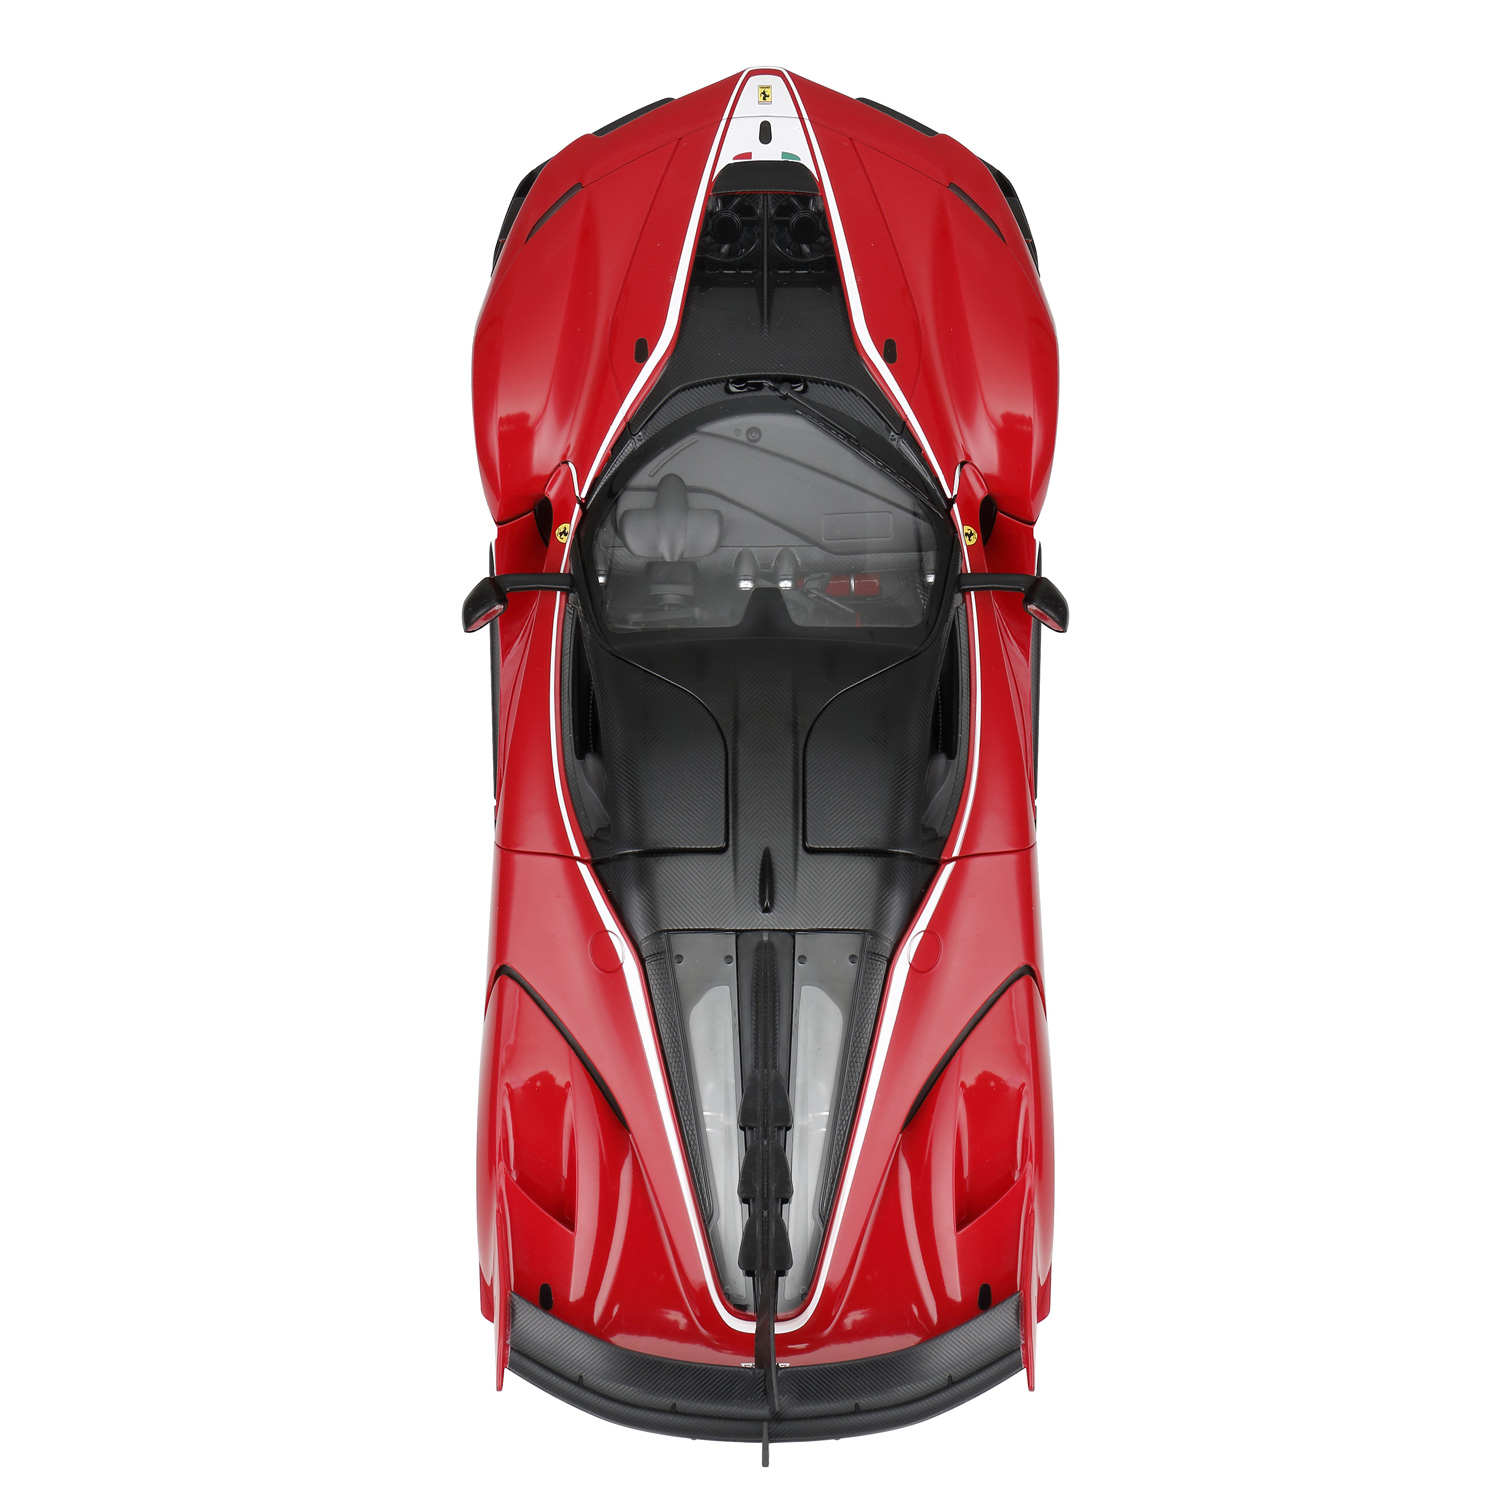 Licensed Rc Car 1 14 Scale Ferrari Laferrari Fxx K Evo Rastar Radio Remote Control 1 14 Rtr Car Model Walmart Com Walmart Com